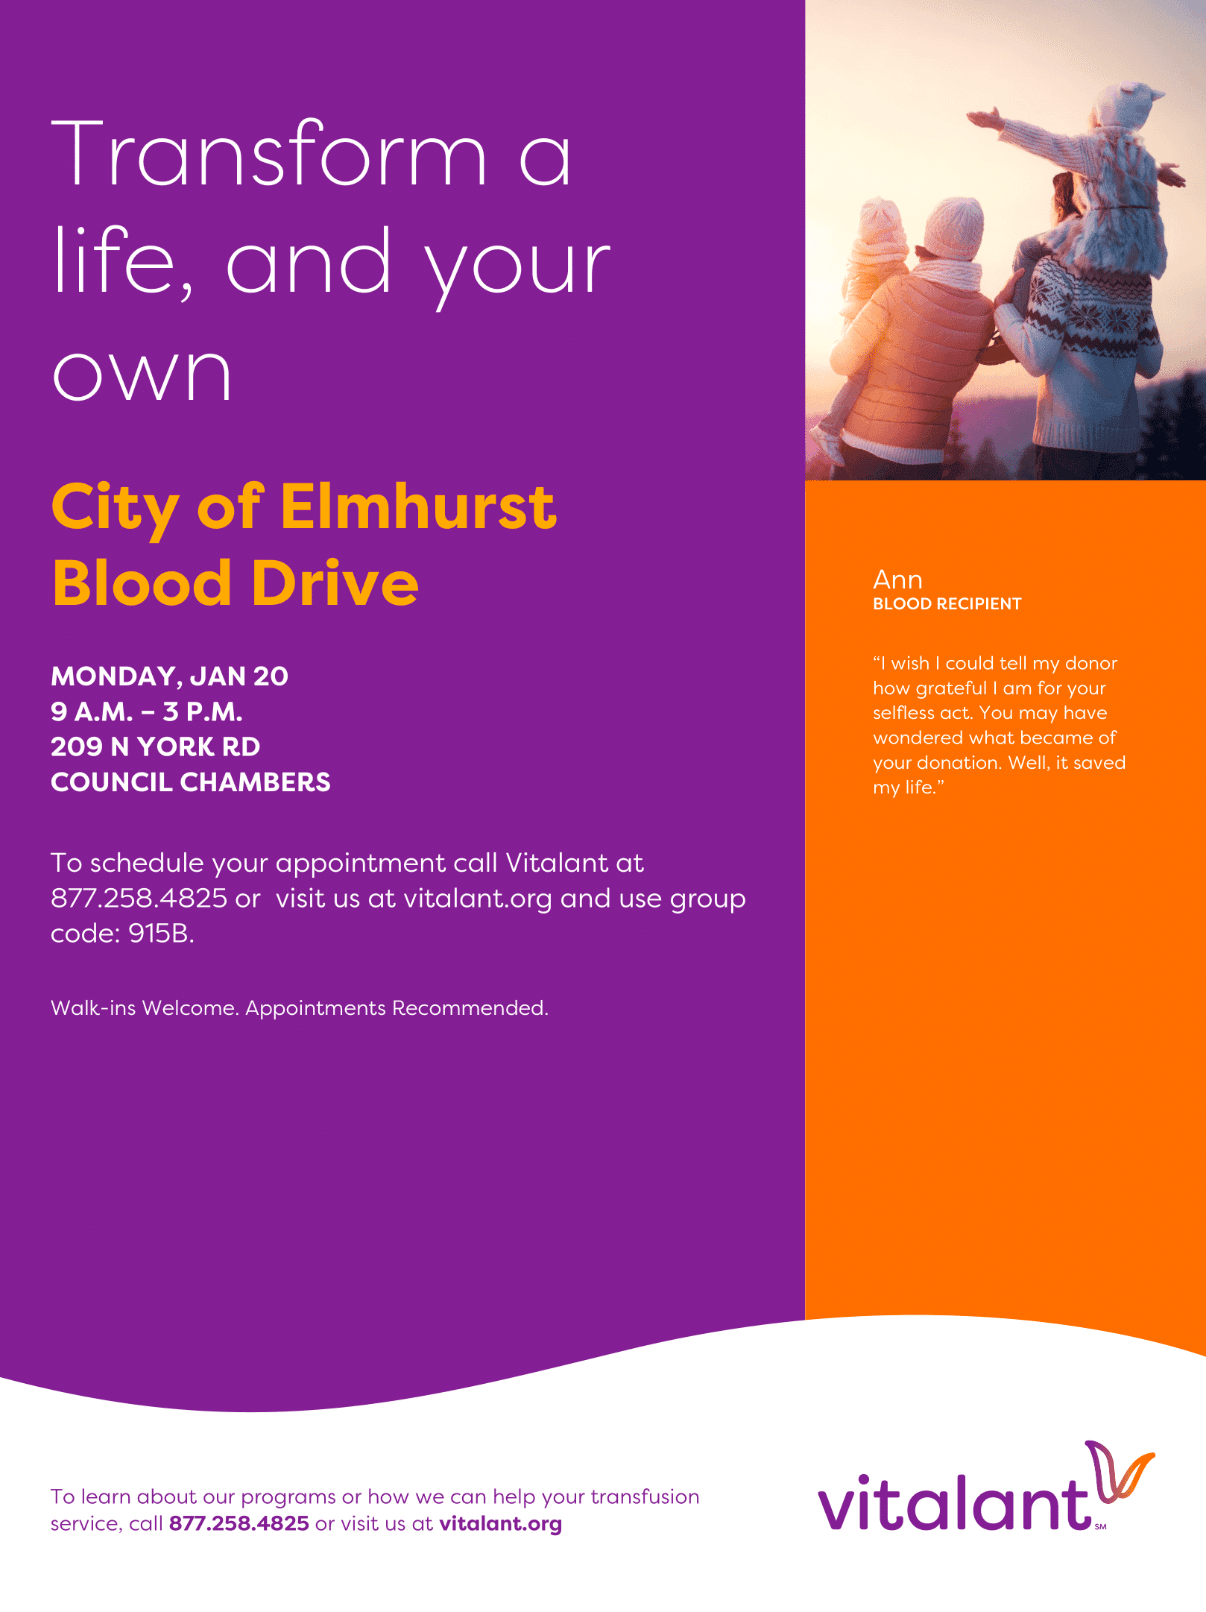 Blood Drive at City Hall